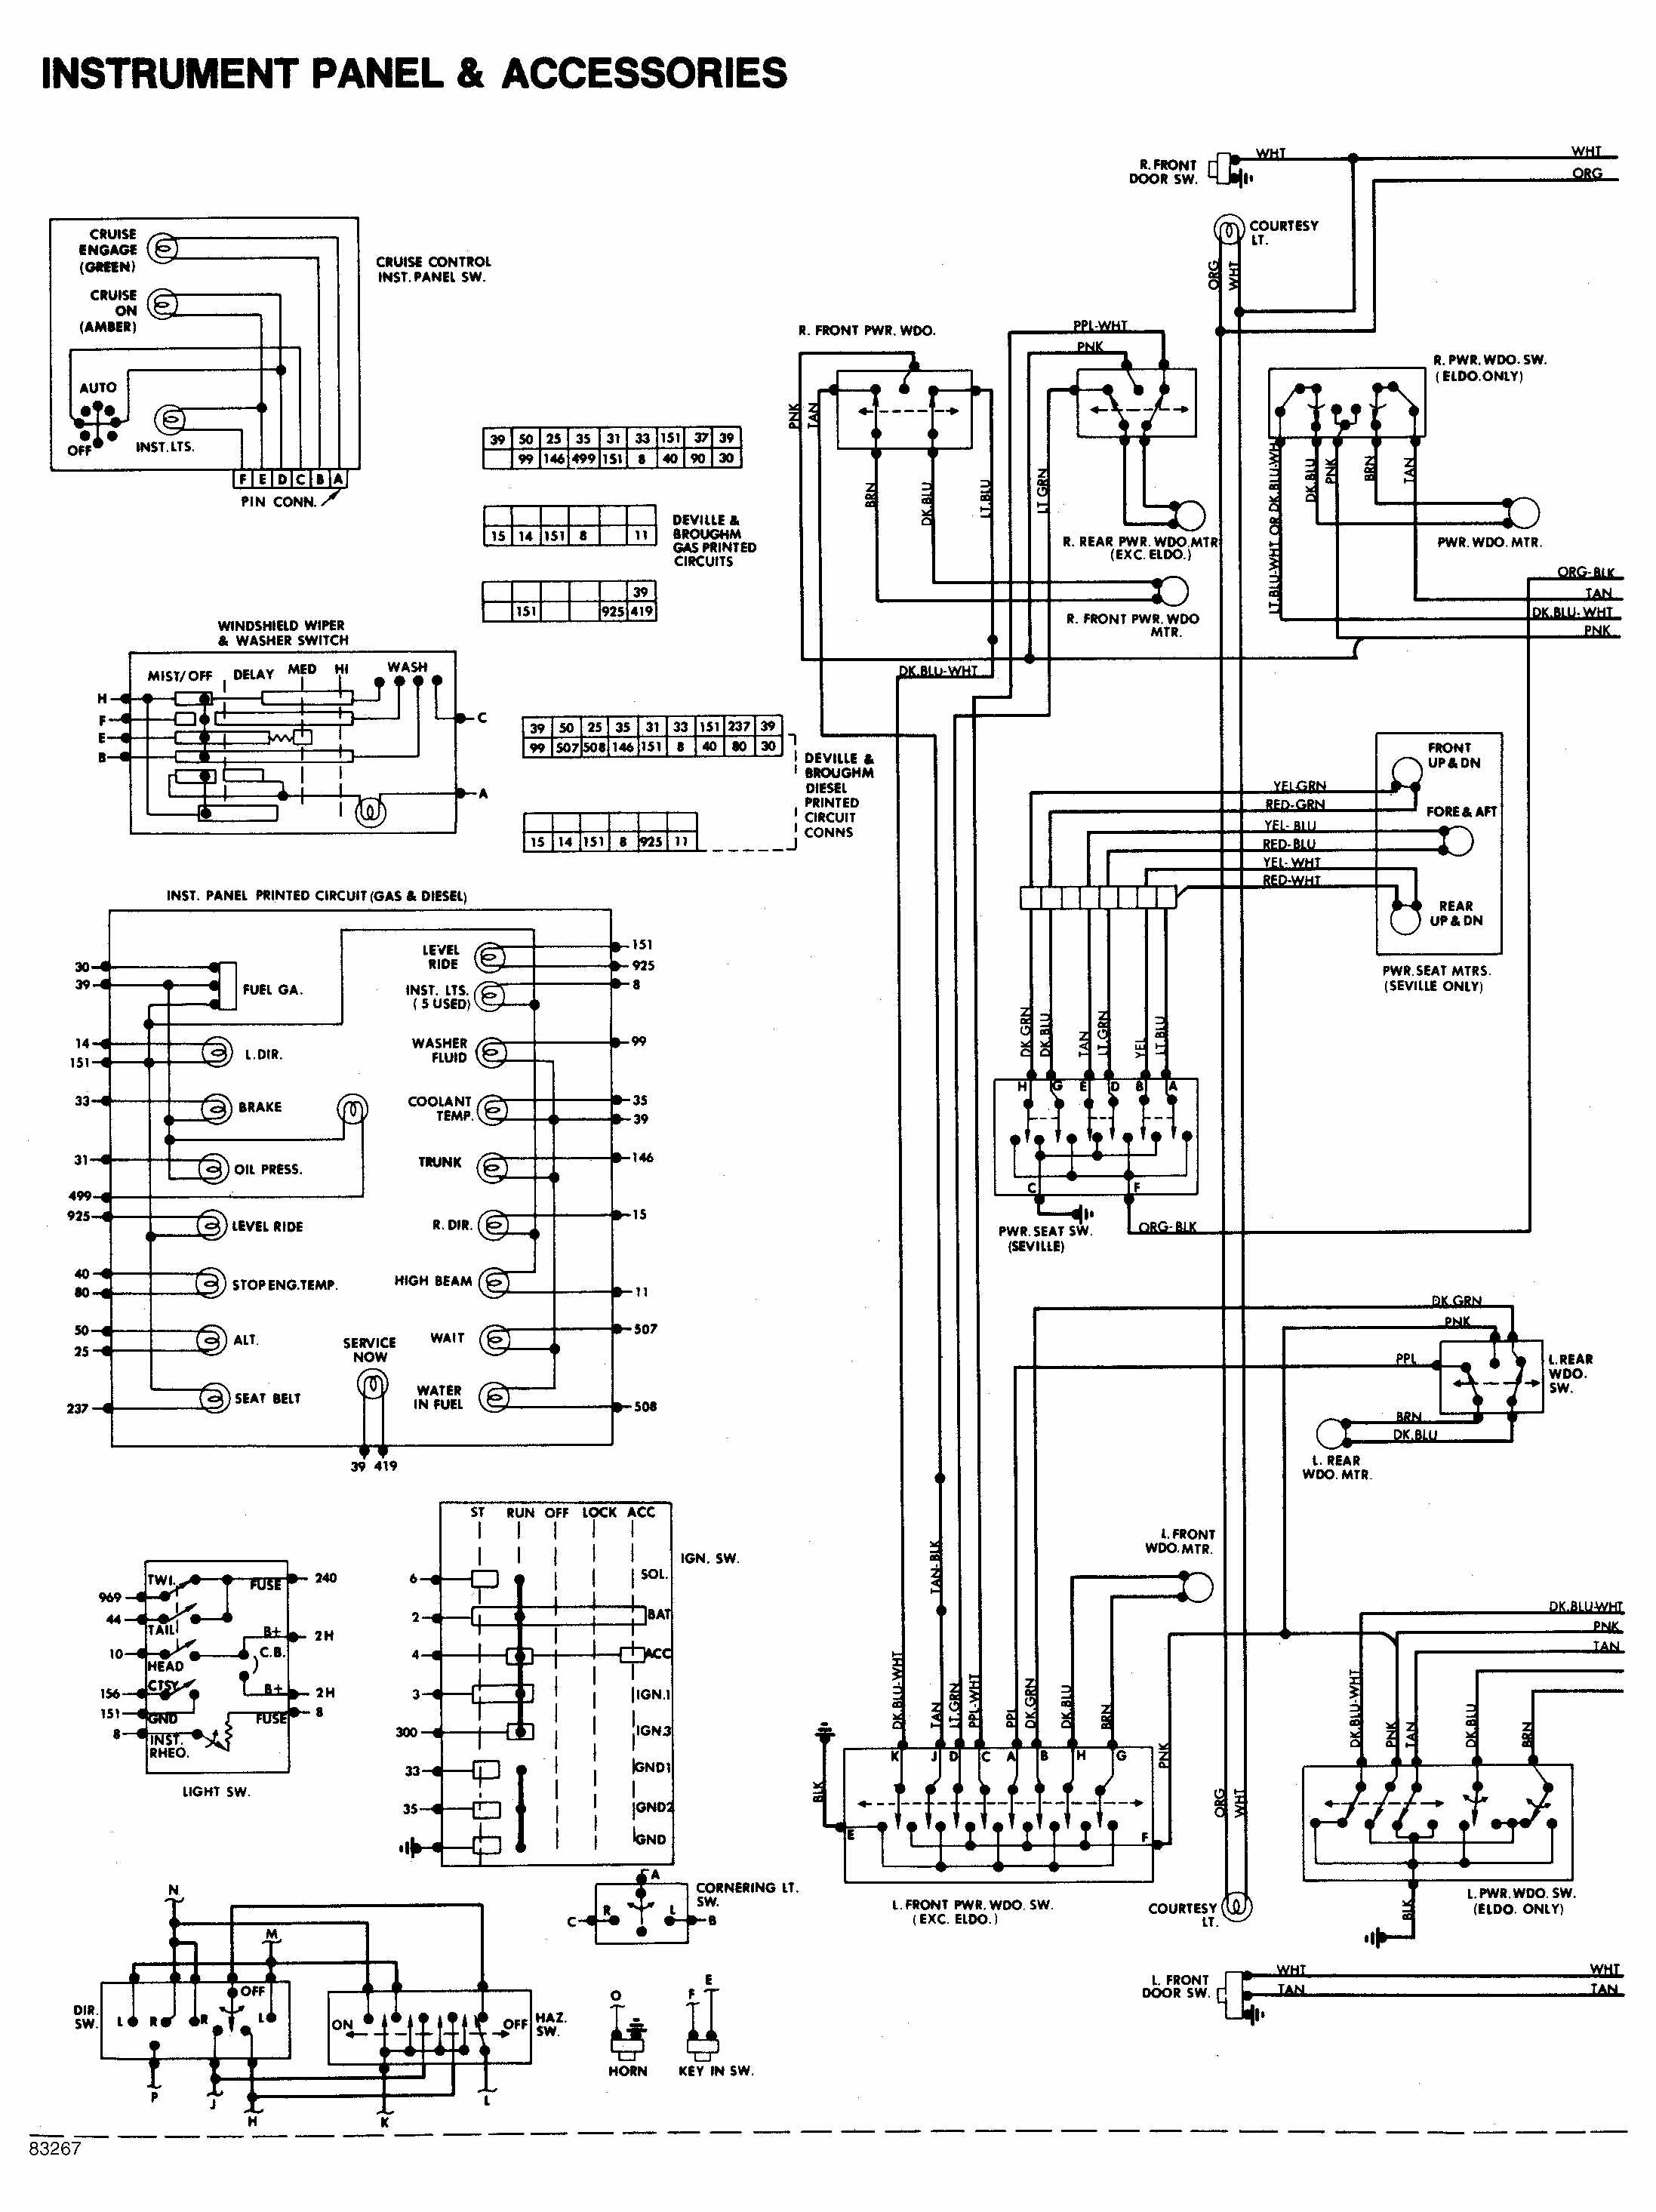 instrument panel and accessories wiring diagram of 1984 cadillac deville chevy diagrams 1984 mustang wiring diagram at alyssarenee.co